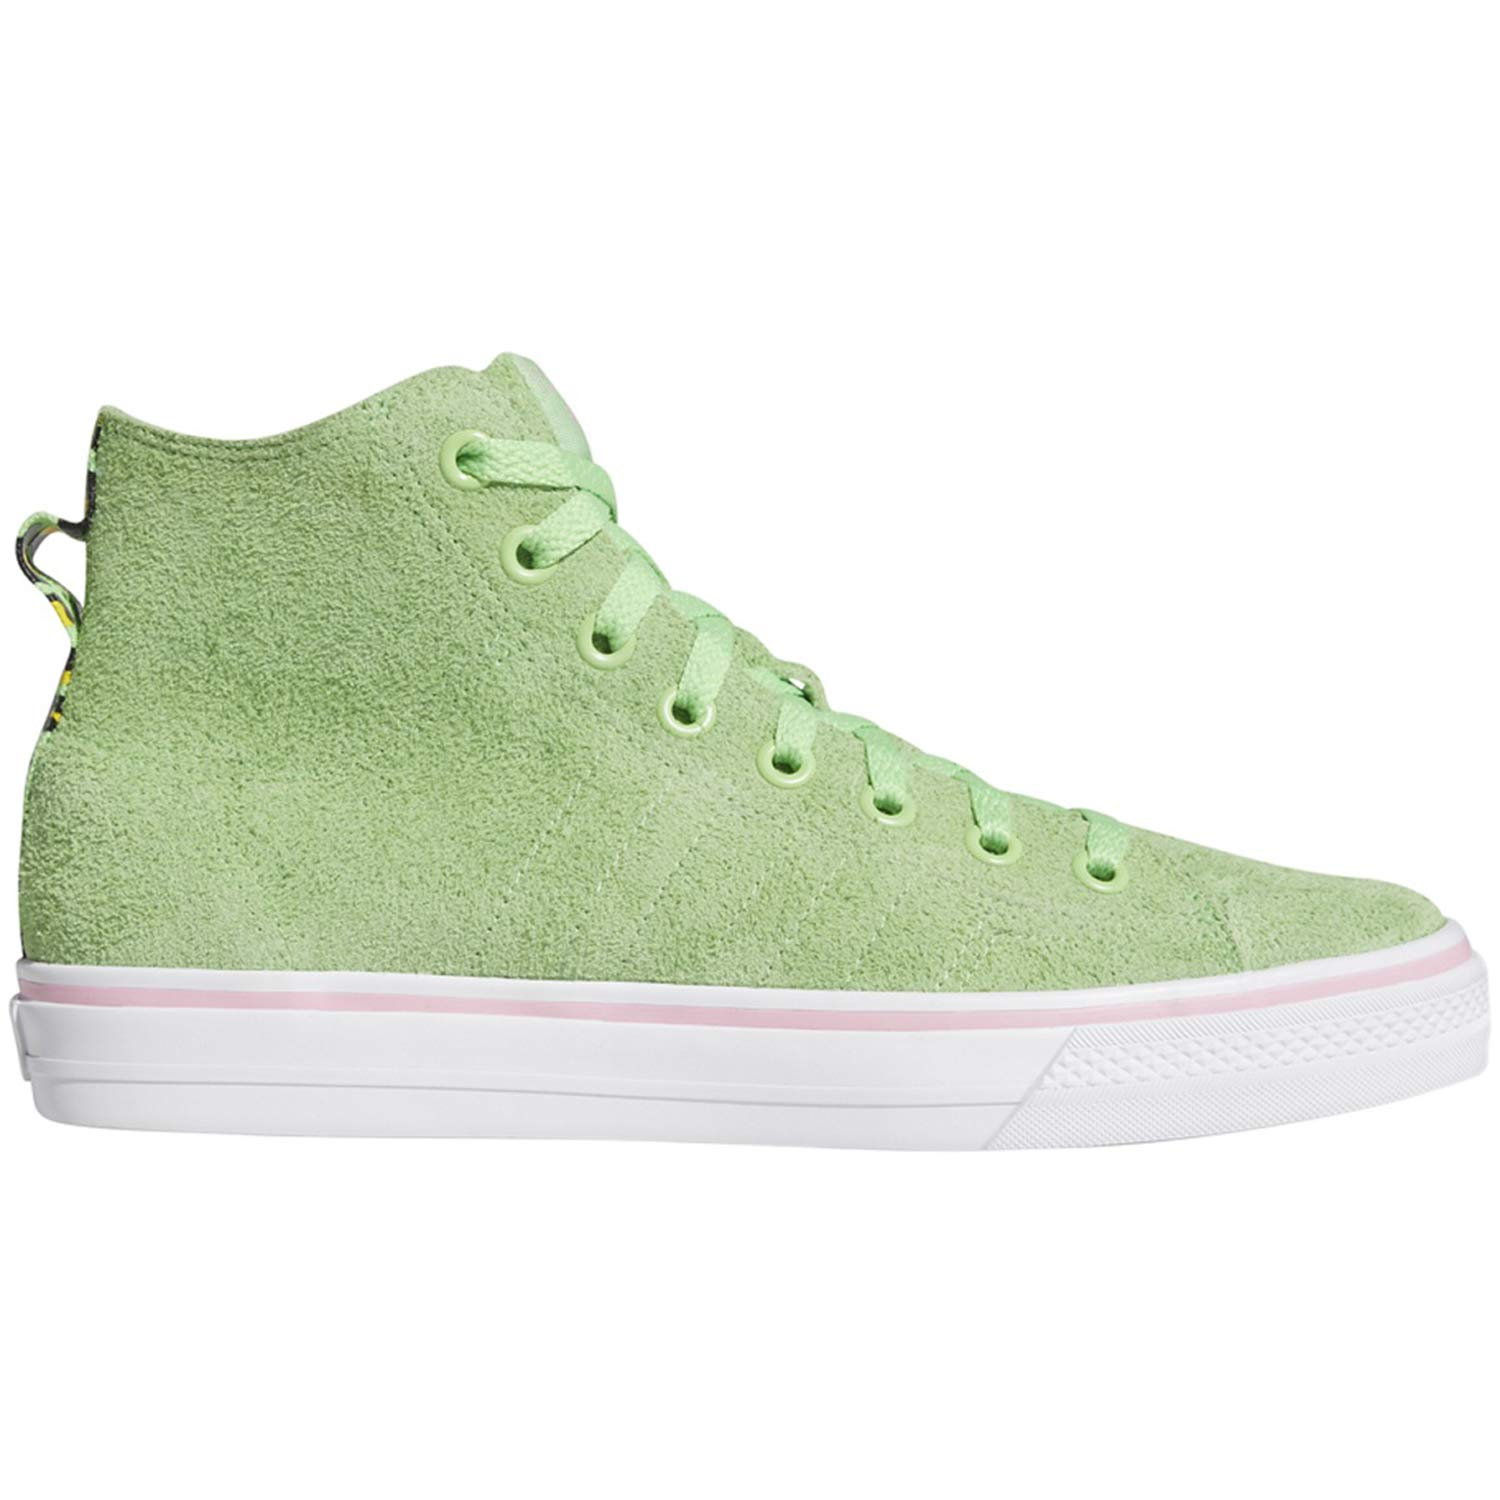 obtenir pas cher 8dfa8 32707 Amazon.com | adidas Nizza Hi RFS (Spring Green/White/Light ...